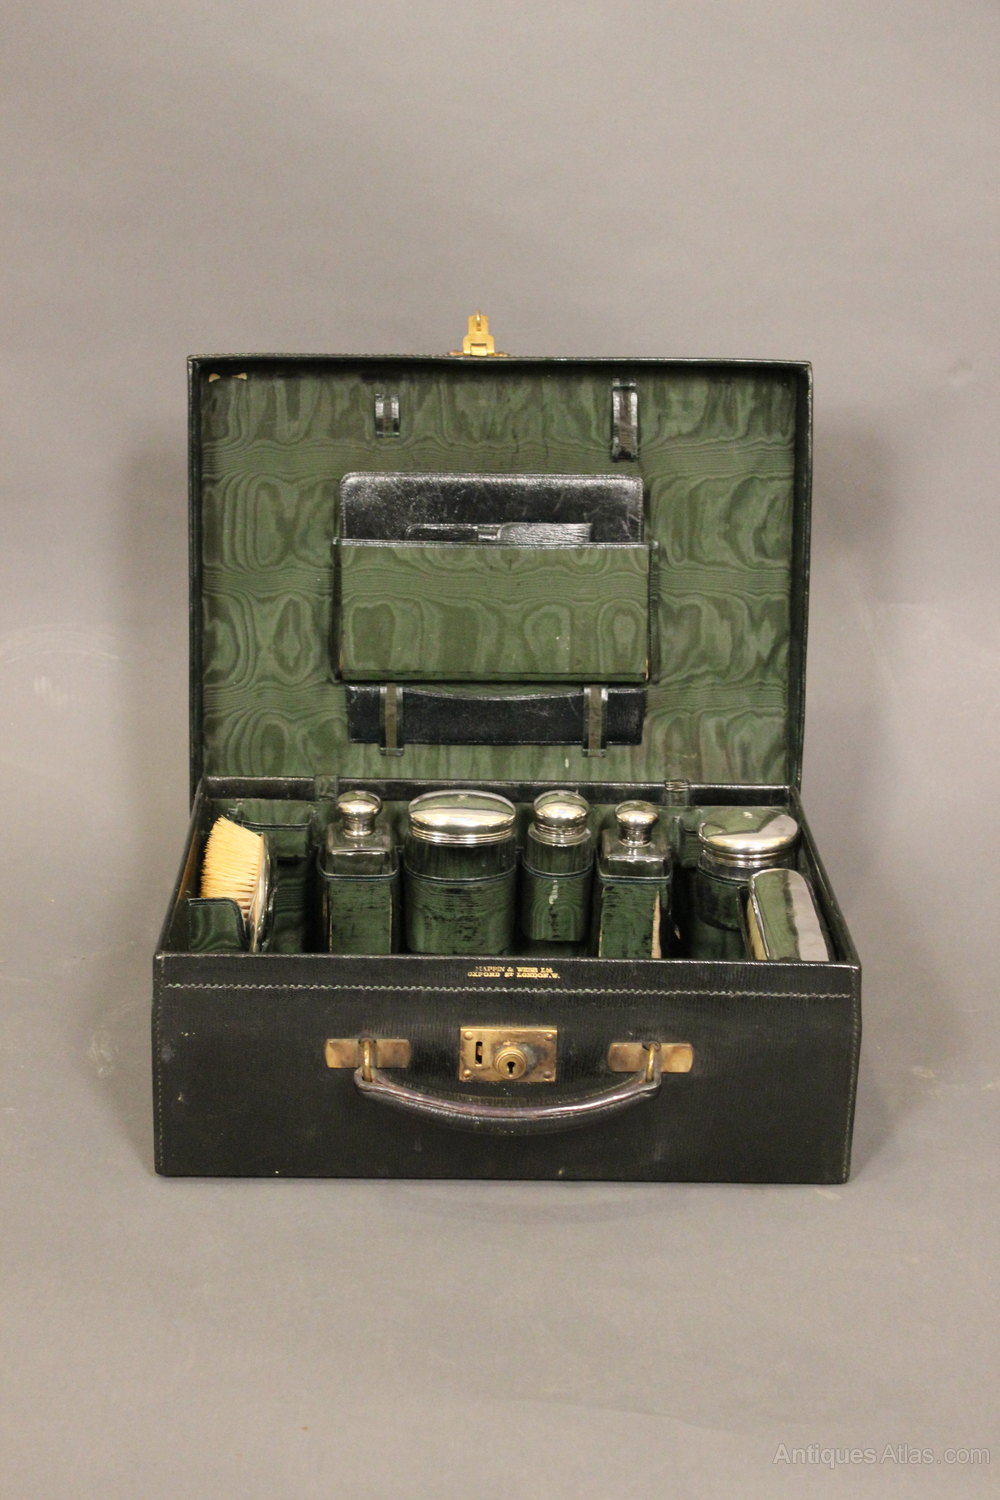 antiques atlas 19thc vanity set dressing case. Black Bedroom Furniture Sets. Home Design Ideas